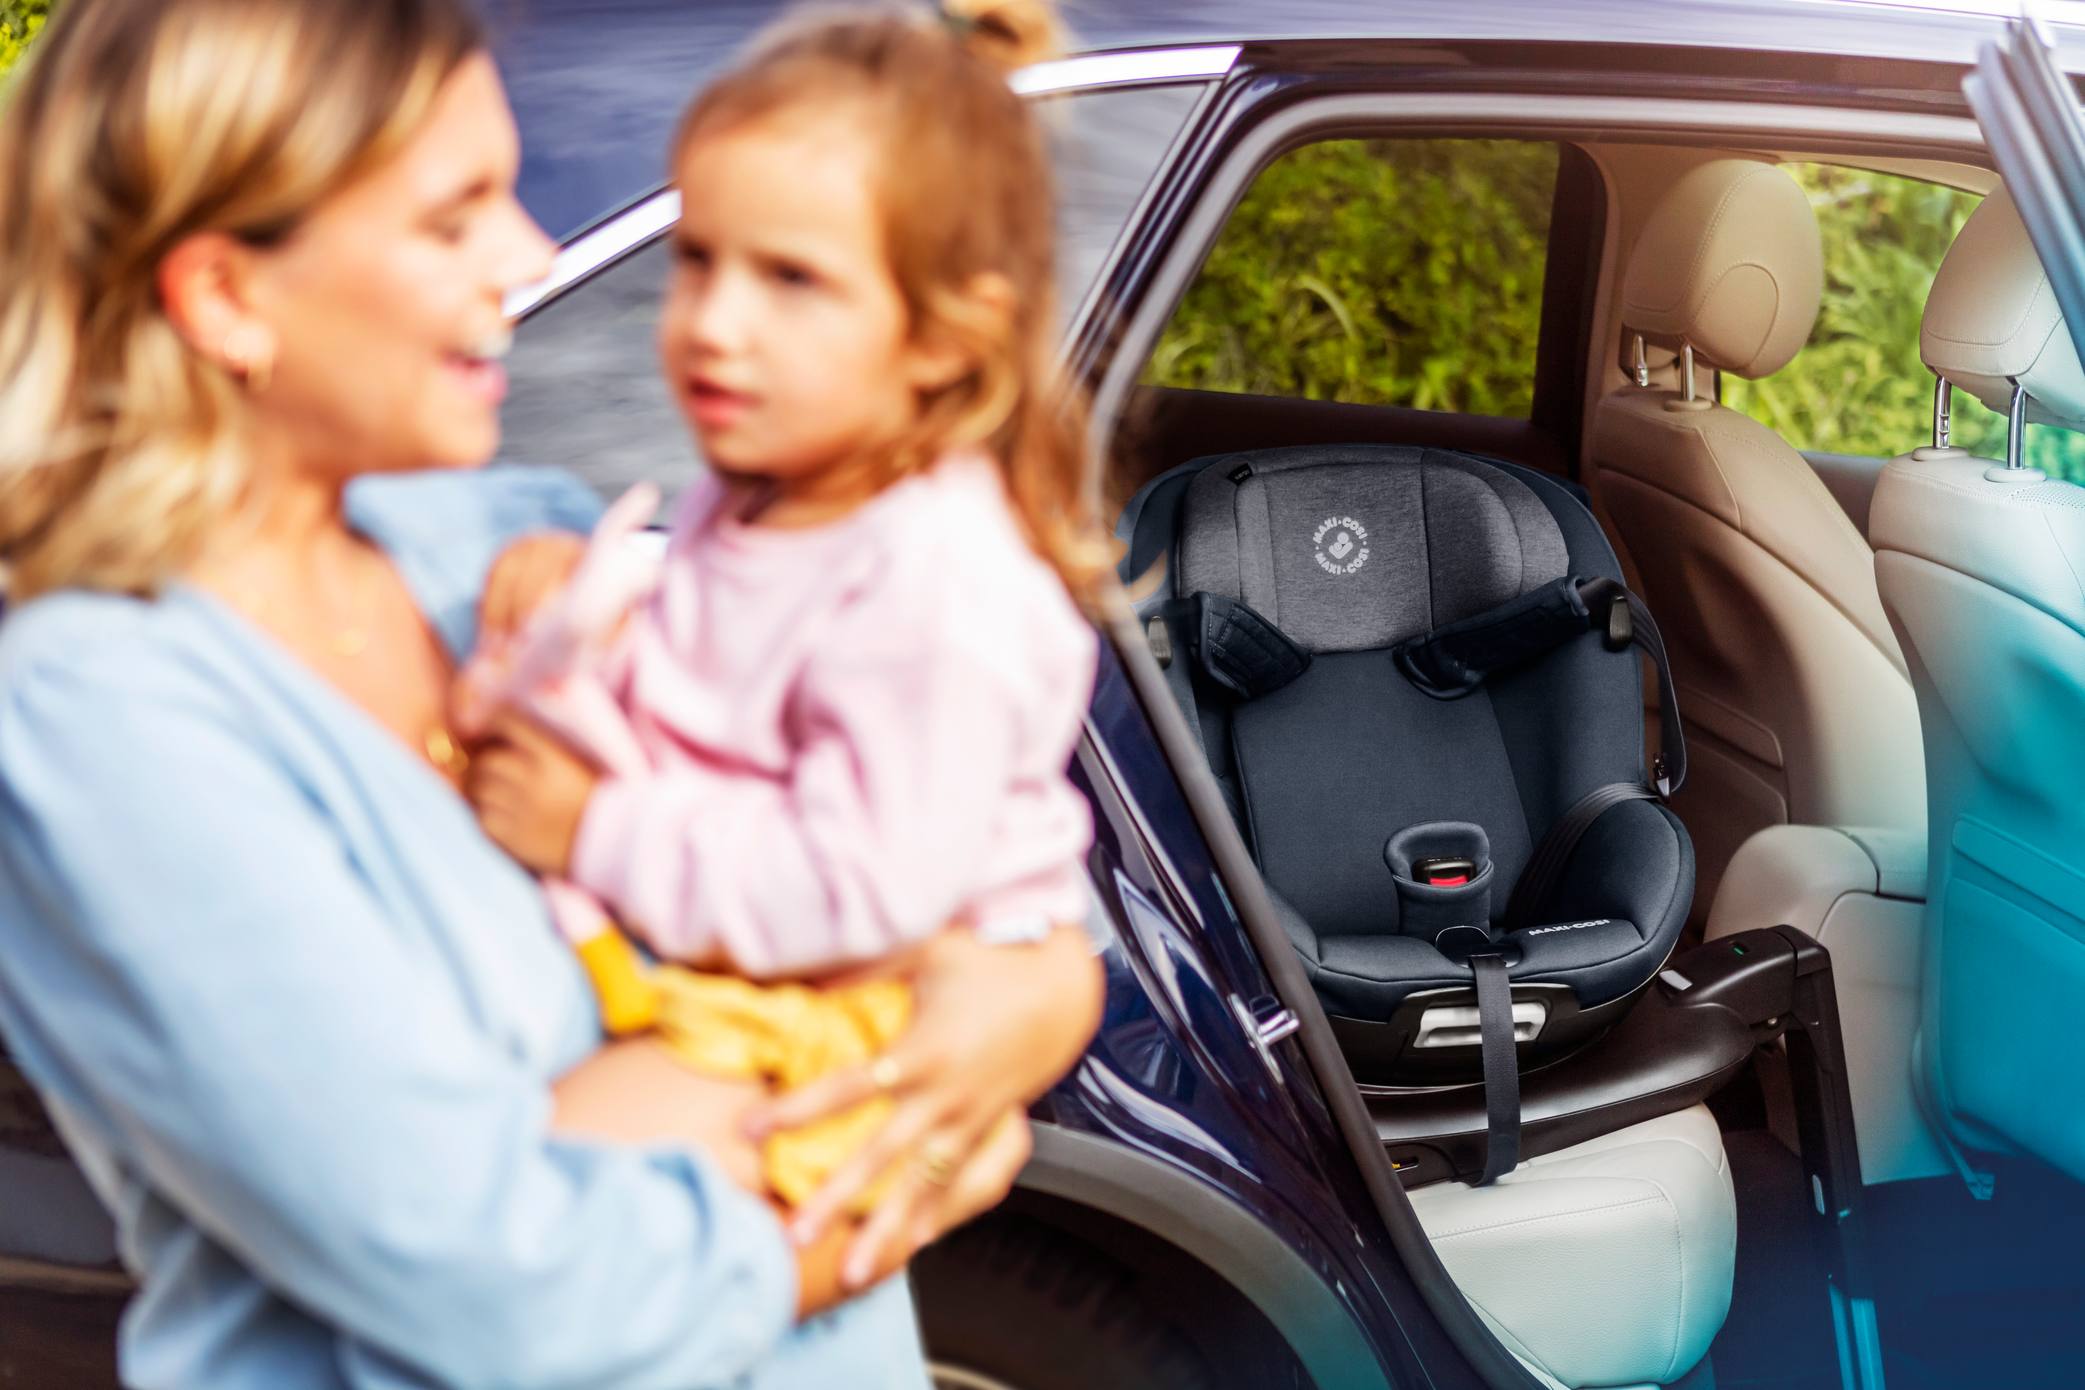 MC8511_2020_Maxicosi_carseat_Mica_Lifestyle_Summer_momcuddlingwithtoddlerseatinbackground2_Landscape_RGB